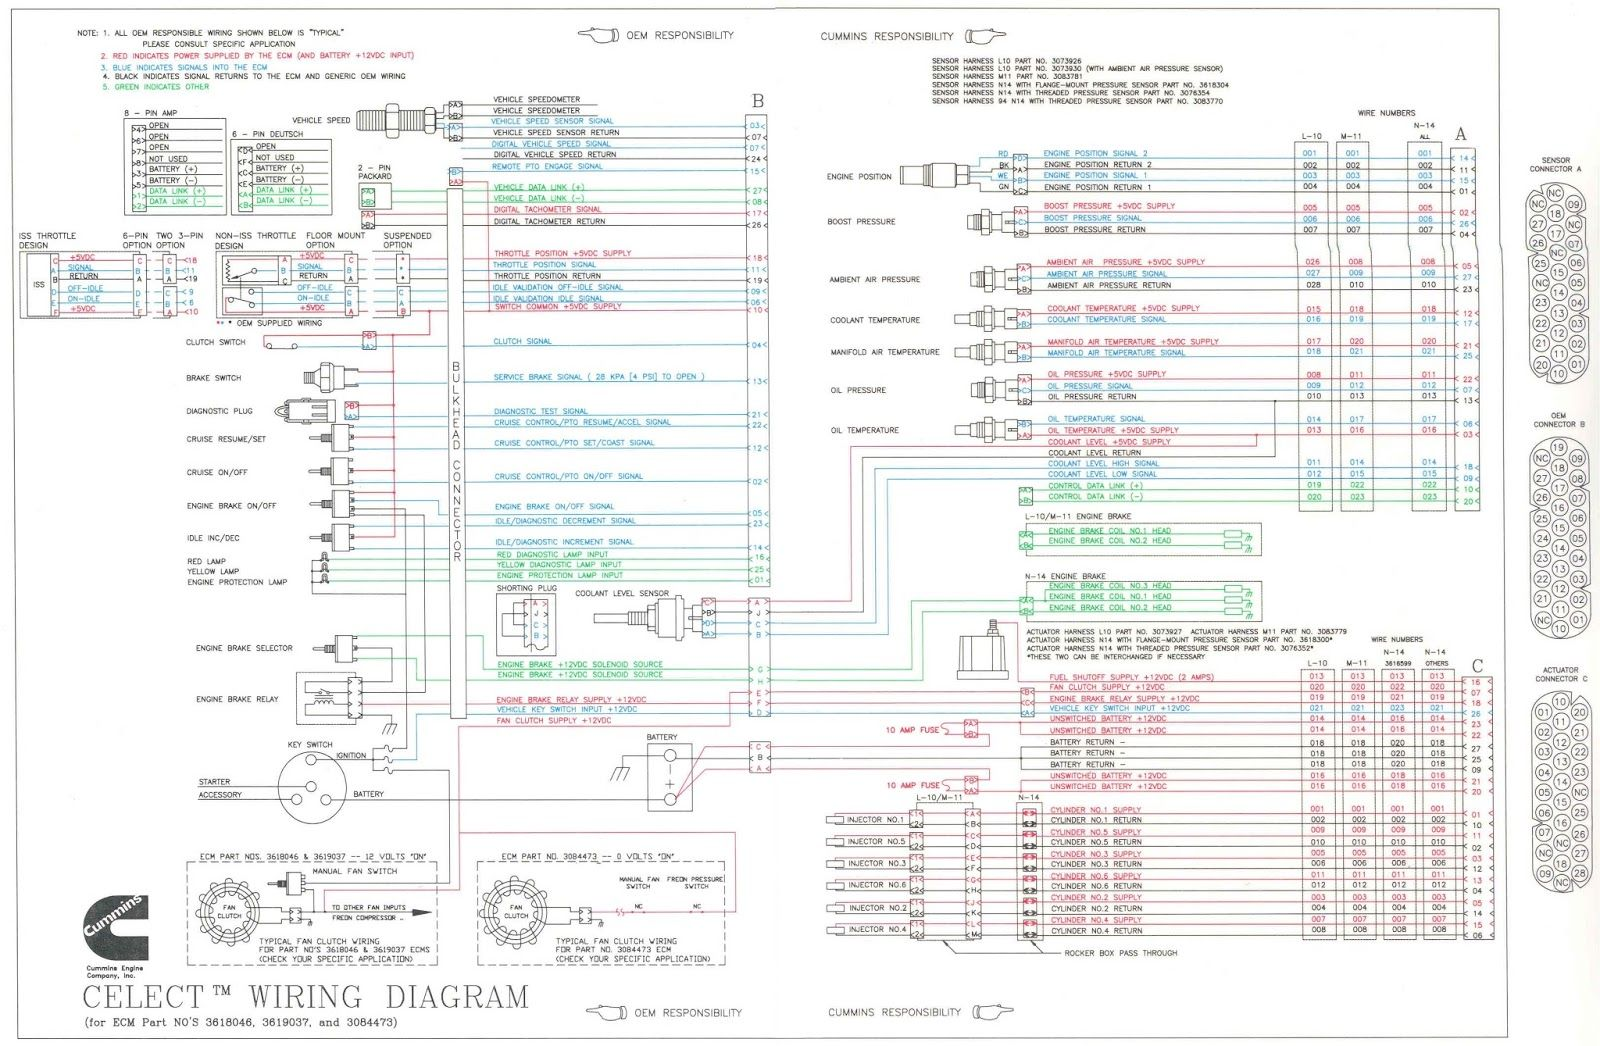 n14 celect ecm wiring diagram wiring diagram details cummins n14 celect ecm wiring diagram n14 celect [ 1600 x 1046 Pixel ]